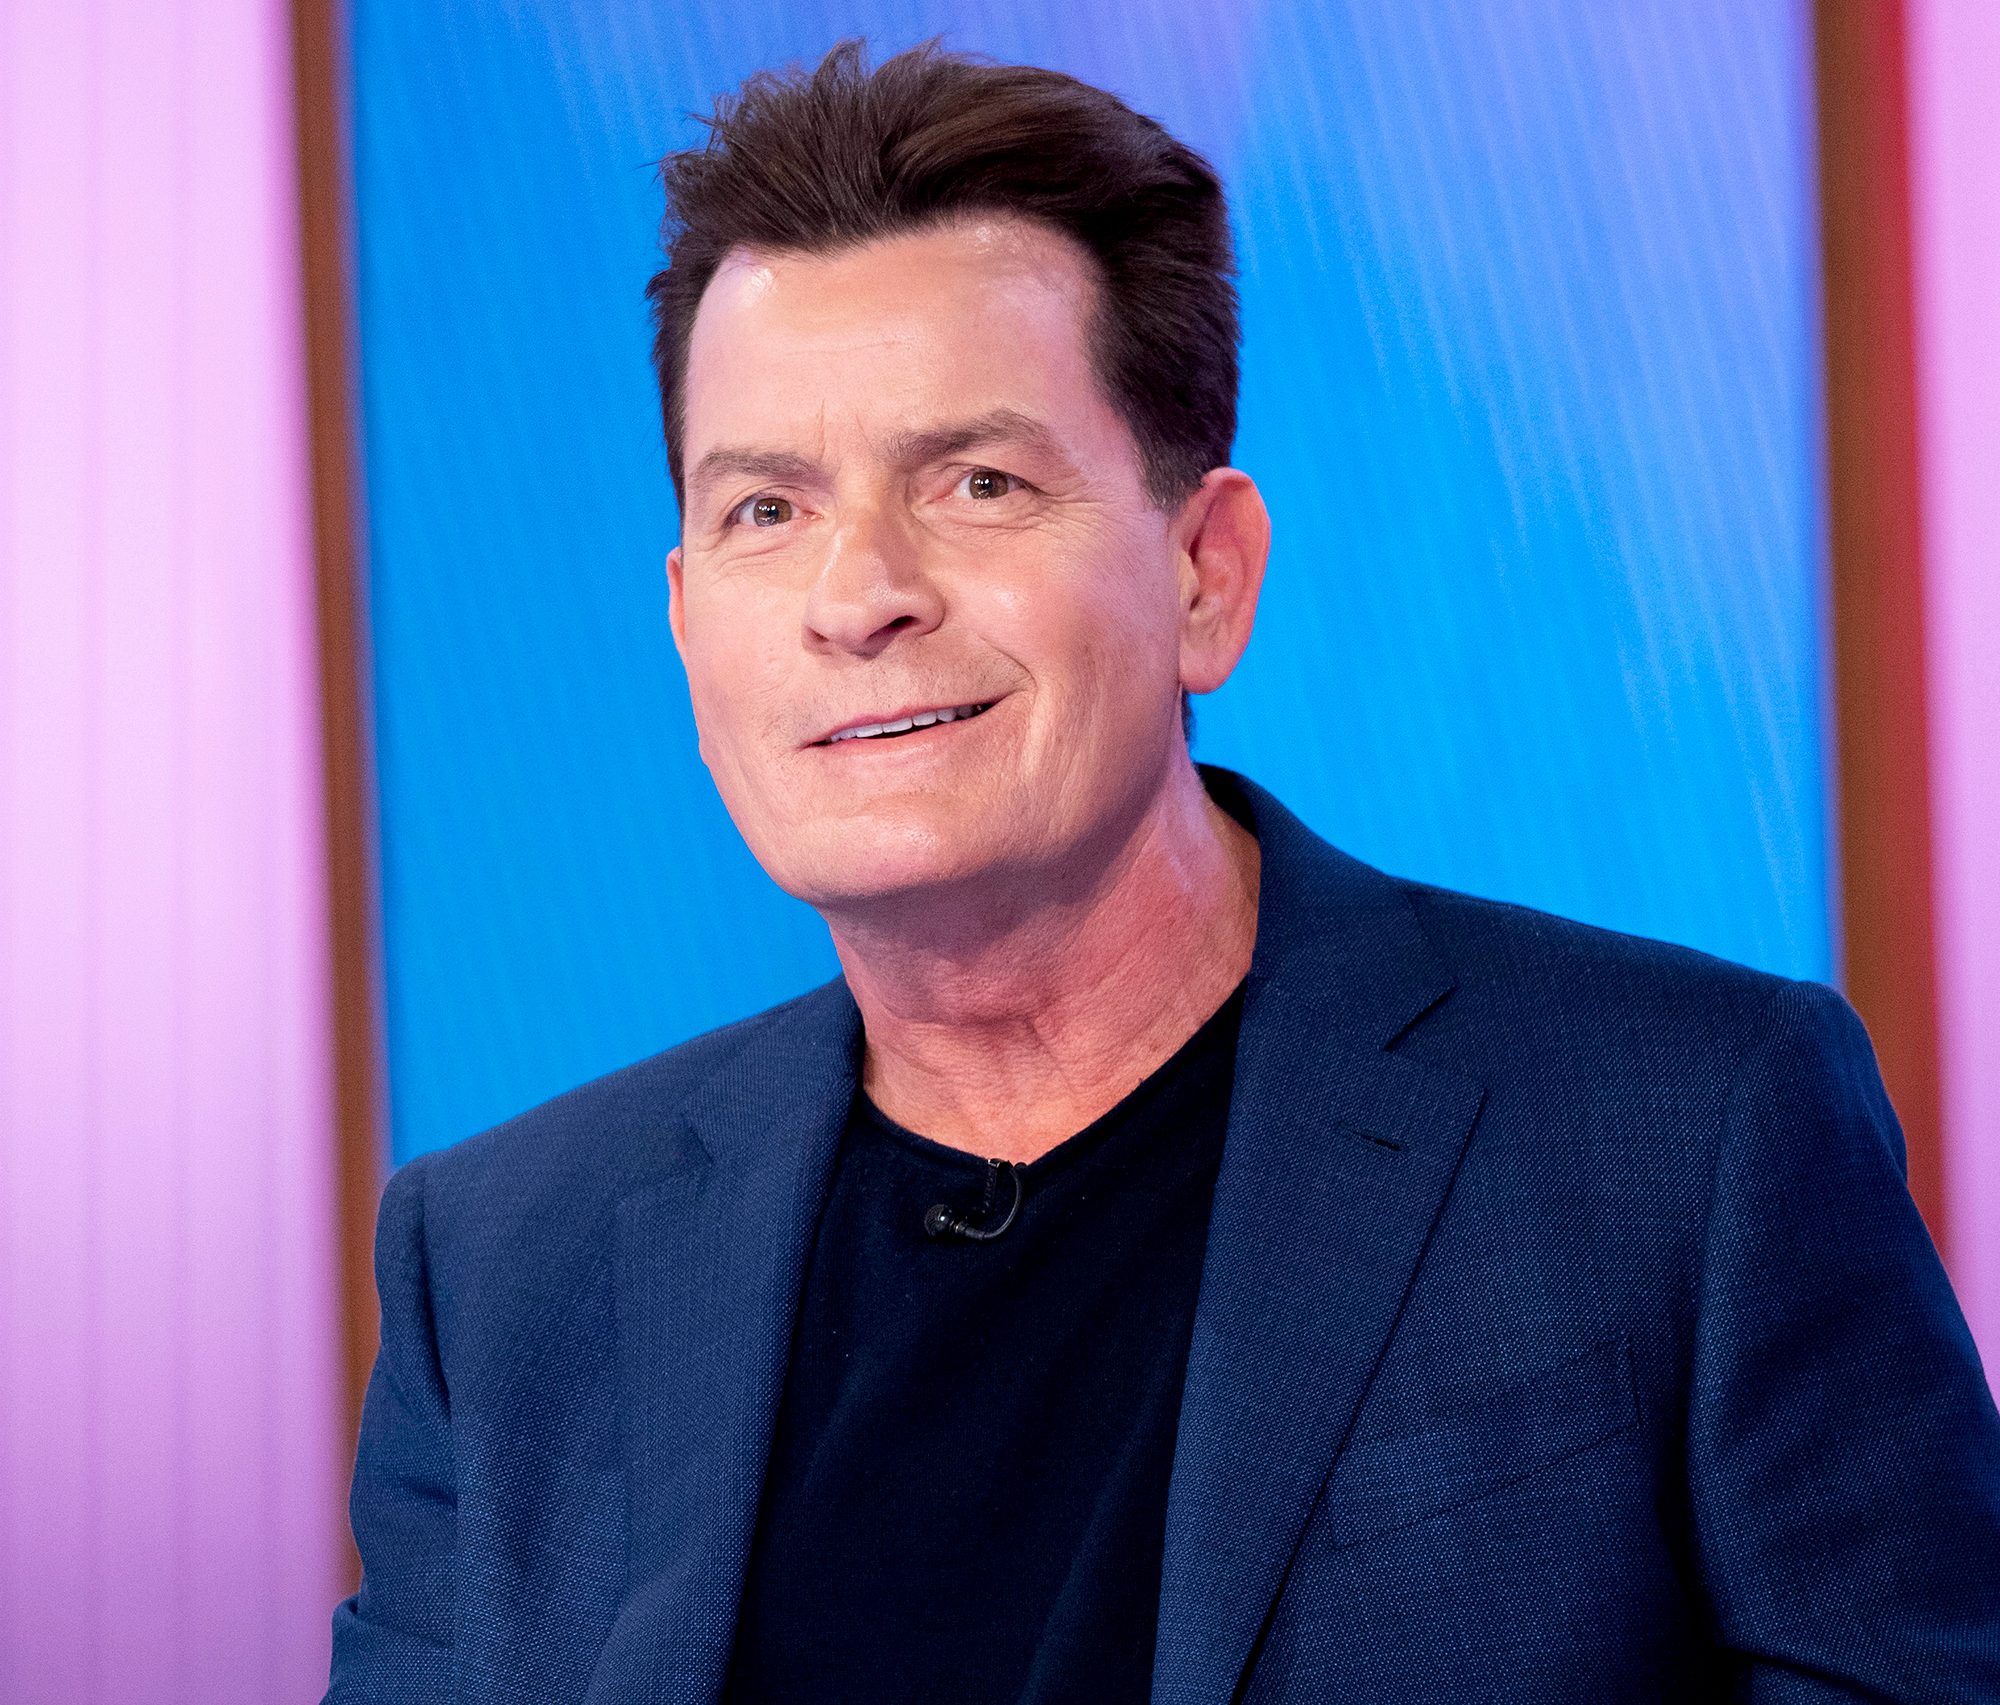 Charlie-Sheen-Turned-Down-Dancing-with-the-Stars